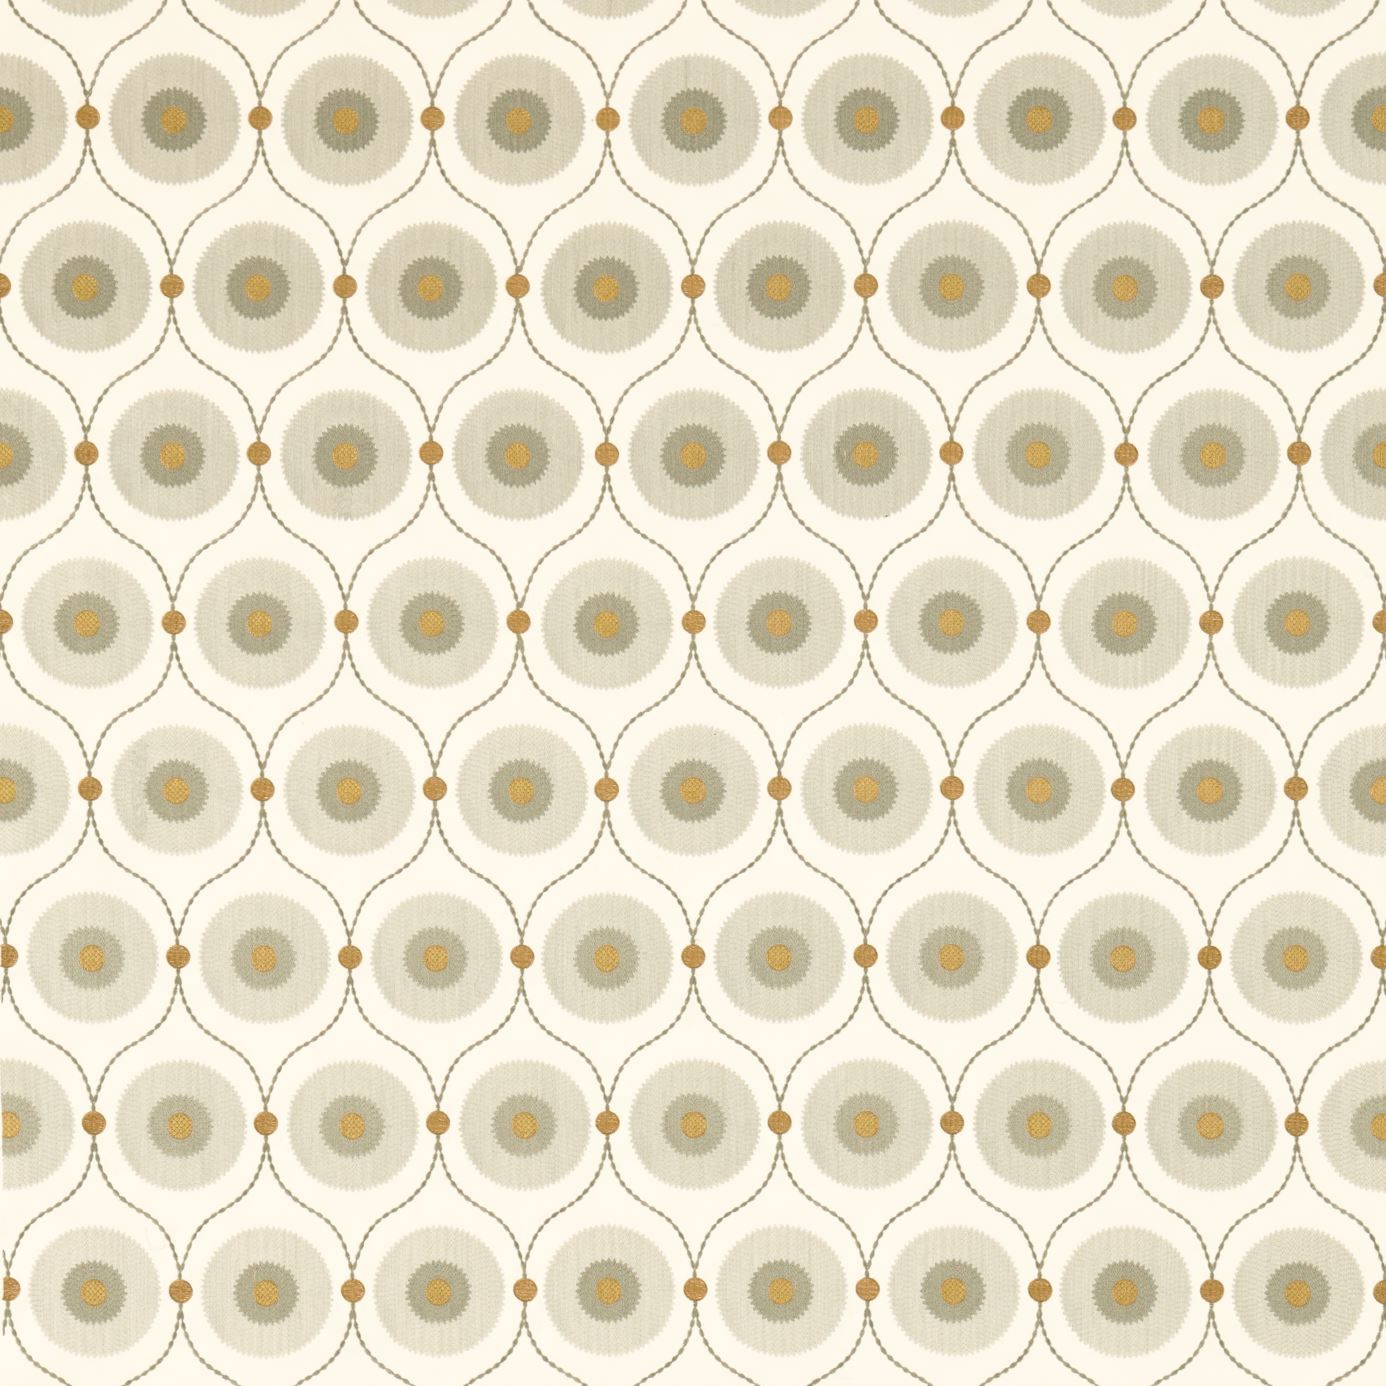 Pin by Charlaude on Backgrounds ~ Polka Dot   Pinterest   Pewter ...